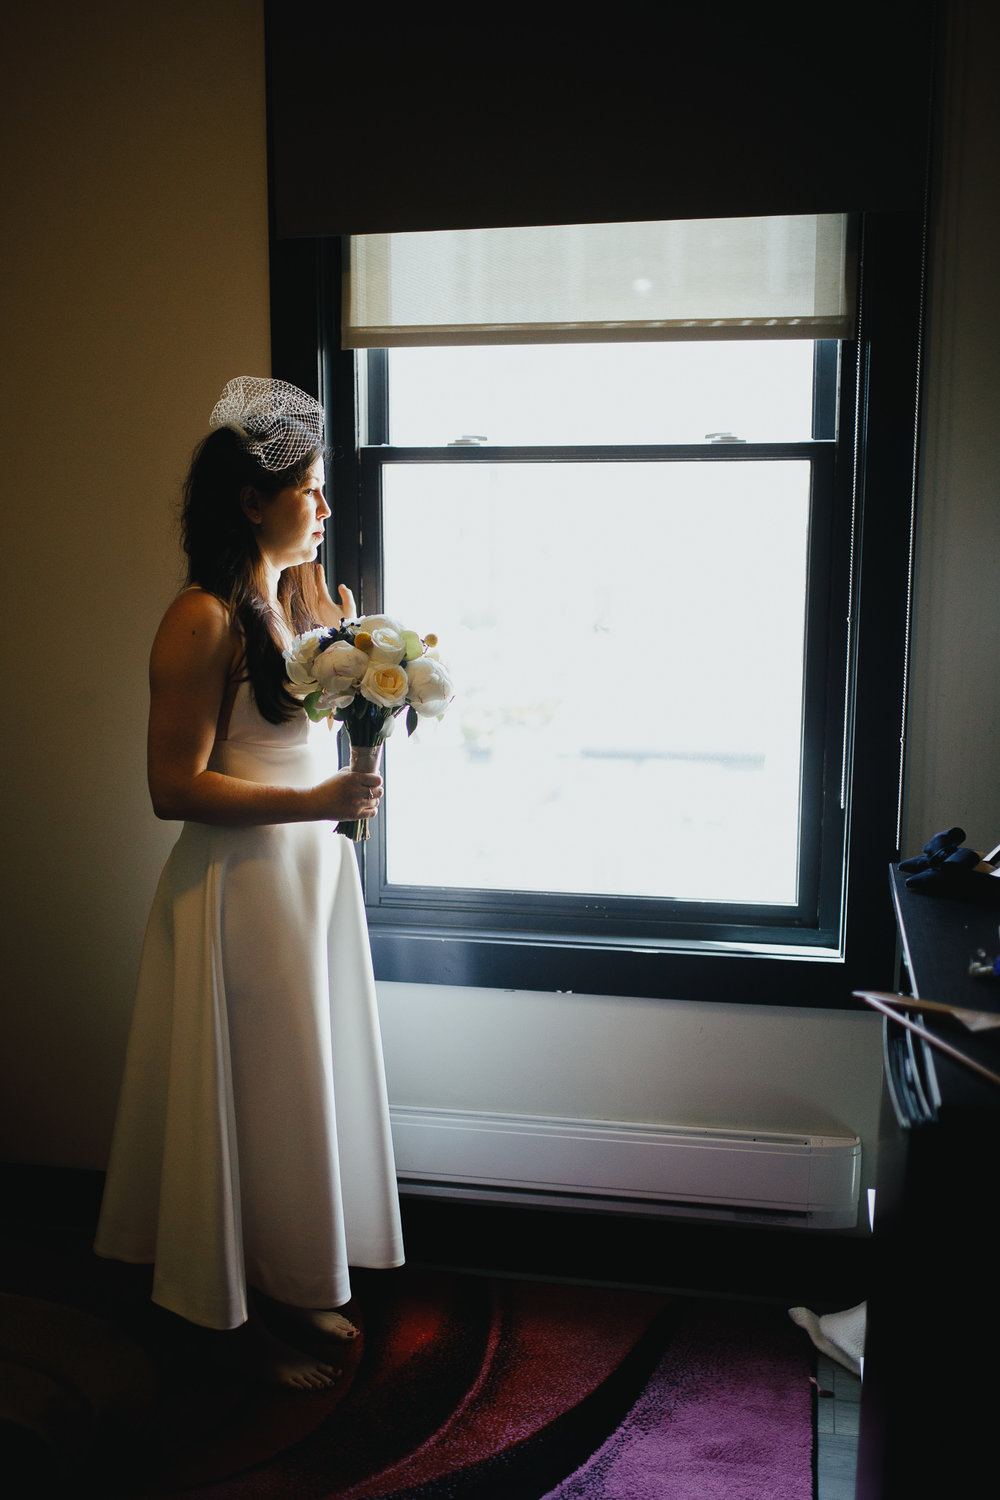 Archer Inspired Photography SF City Hall Elopement Wedding Lifestyle Documentary Affordable Photographer-22.jpg